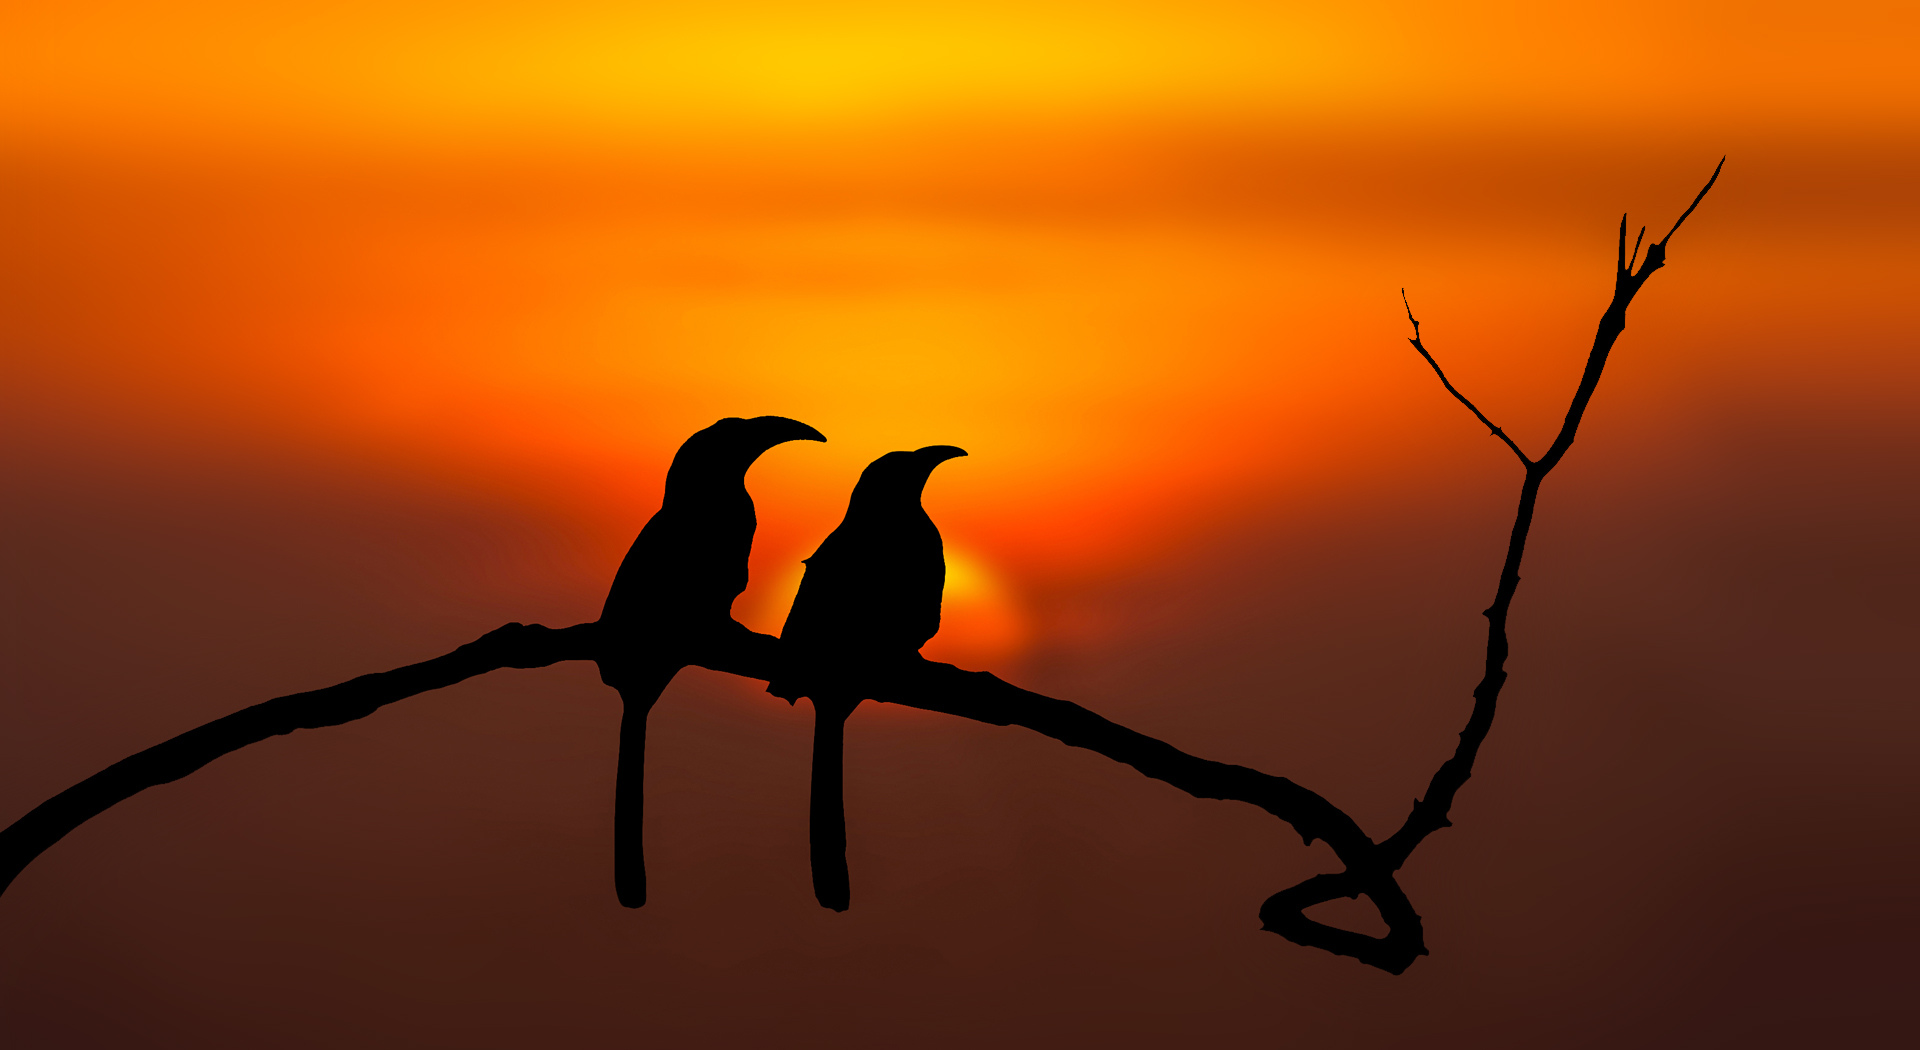 praveen-g-nair_Malabar-grey-hornbill-Pair_from_gavi-forest_Kerala, www.praveengnair.com, praveen g nair, indian wildlife photographer, artist, explorer, writer, wildlife photographer, wildlife photographer from kerala, wildlife photographer in world, Birds of Kerala